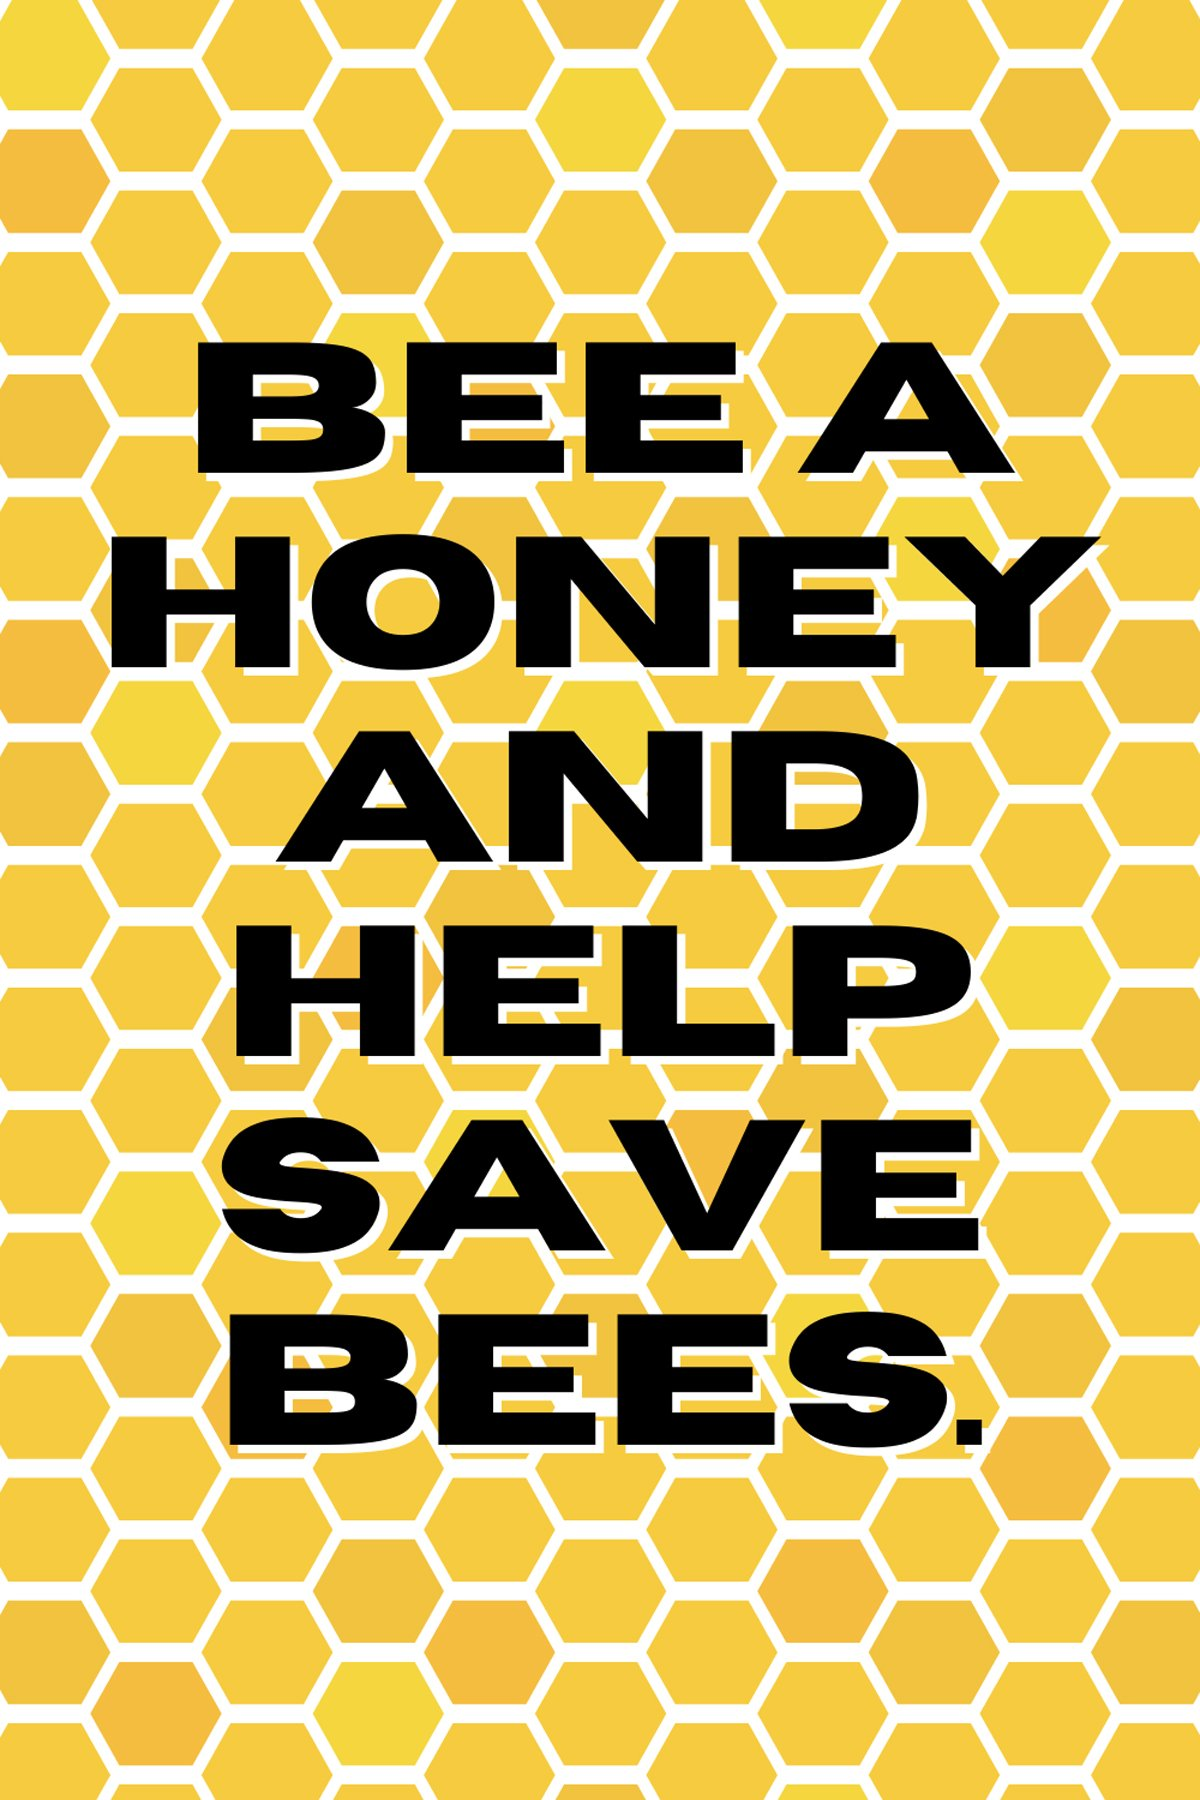 Save the Bees Quote